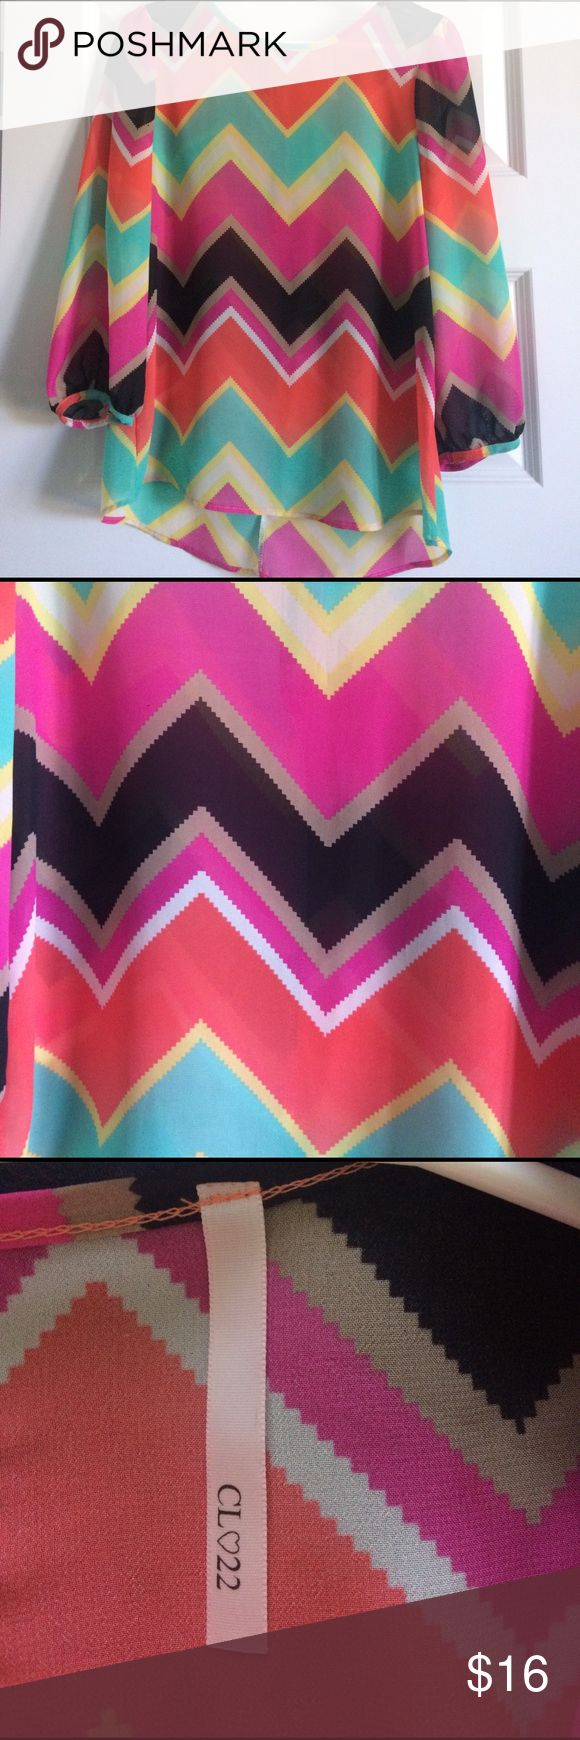 Boutique chevron blouse Gorgeous chevron blouse. Never worn. Size L (would fit a 8-12 in my opinion) Tops Blouses